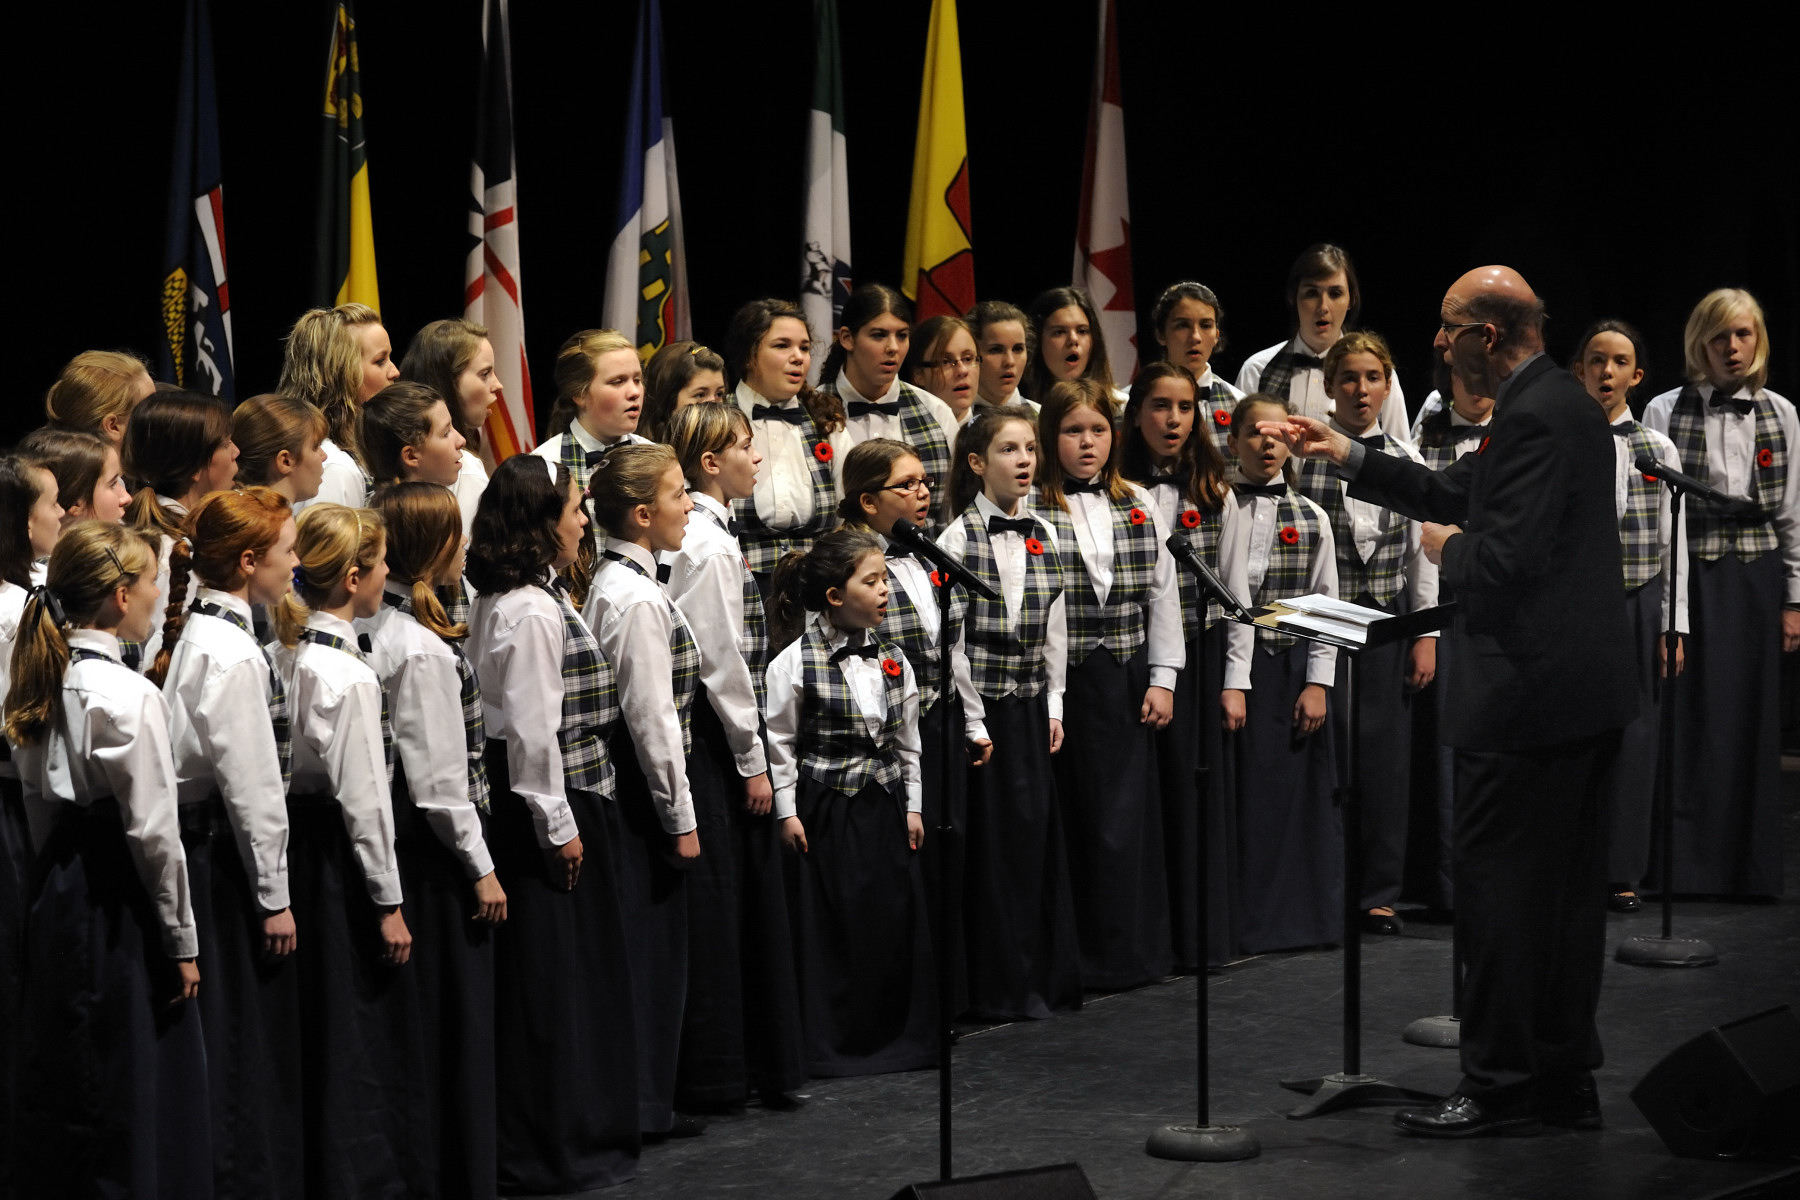 Their Excellencies attended the 8th national Symons Lecture on the State of Canadian Confederation. At the beginning of the ceremony, a local youth choir performed.